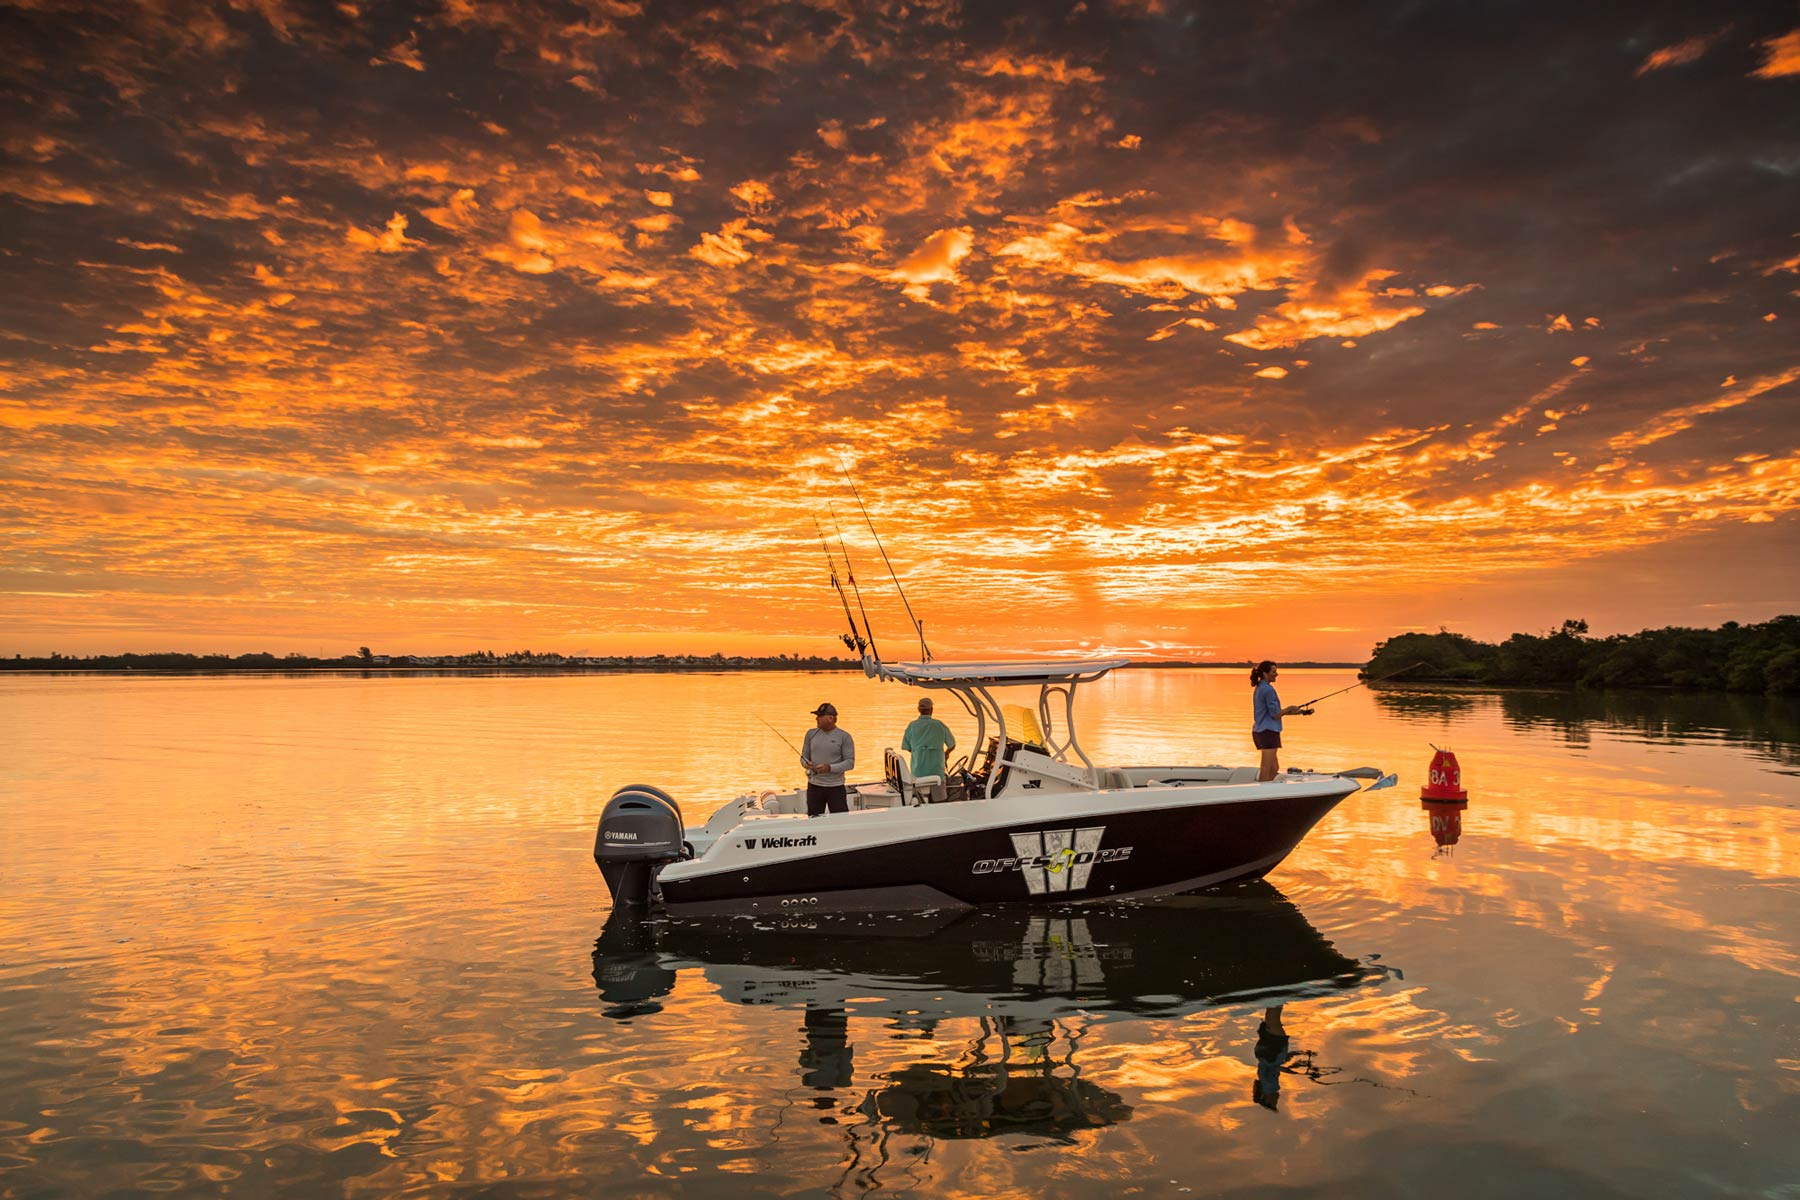 Wellcraft fishing boat at sunrise in Florida